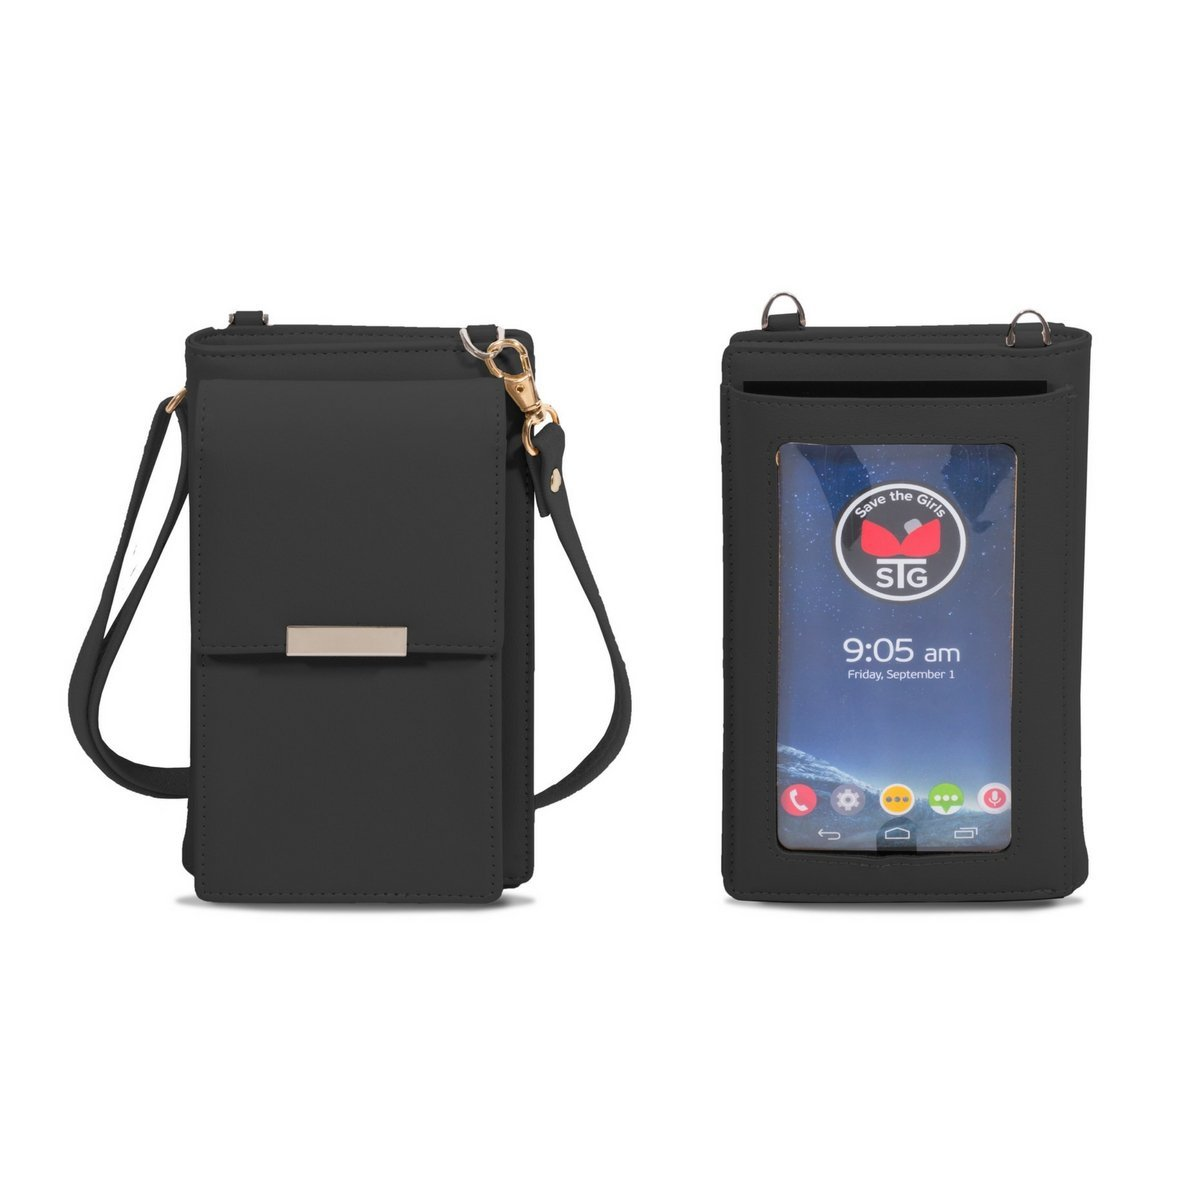 Eye Glass (Touch Screen) Cell Phone Wallet Purse - Black by Save the Girls Touch Screen Purses